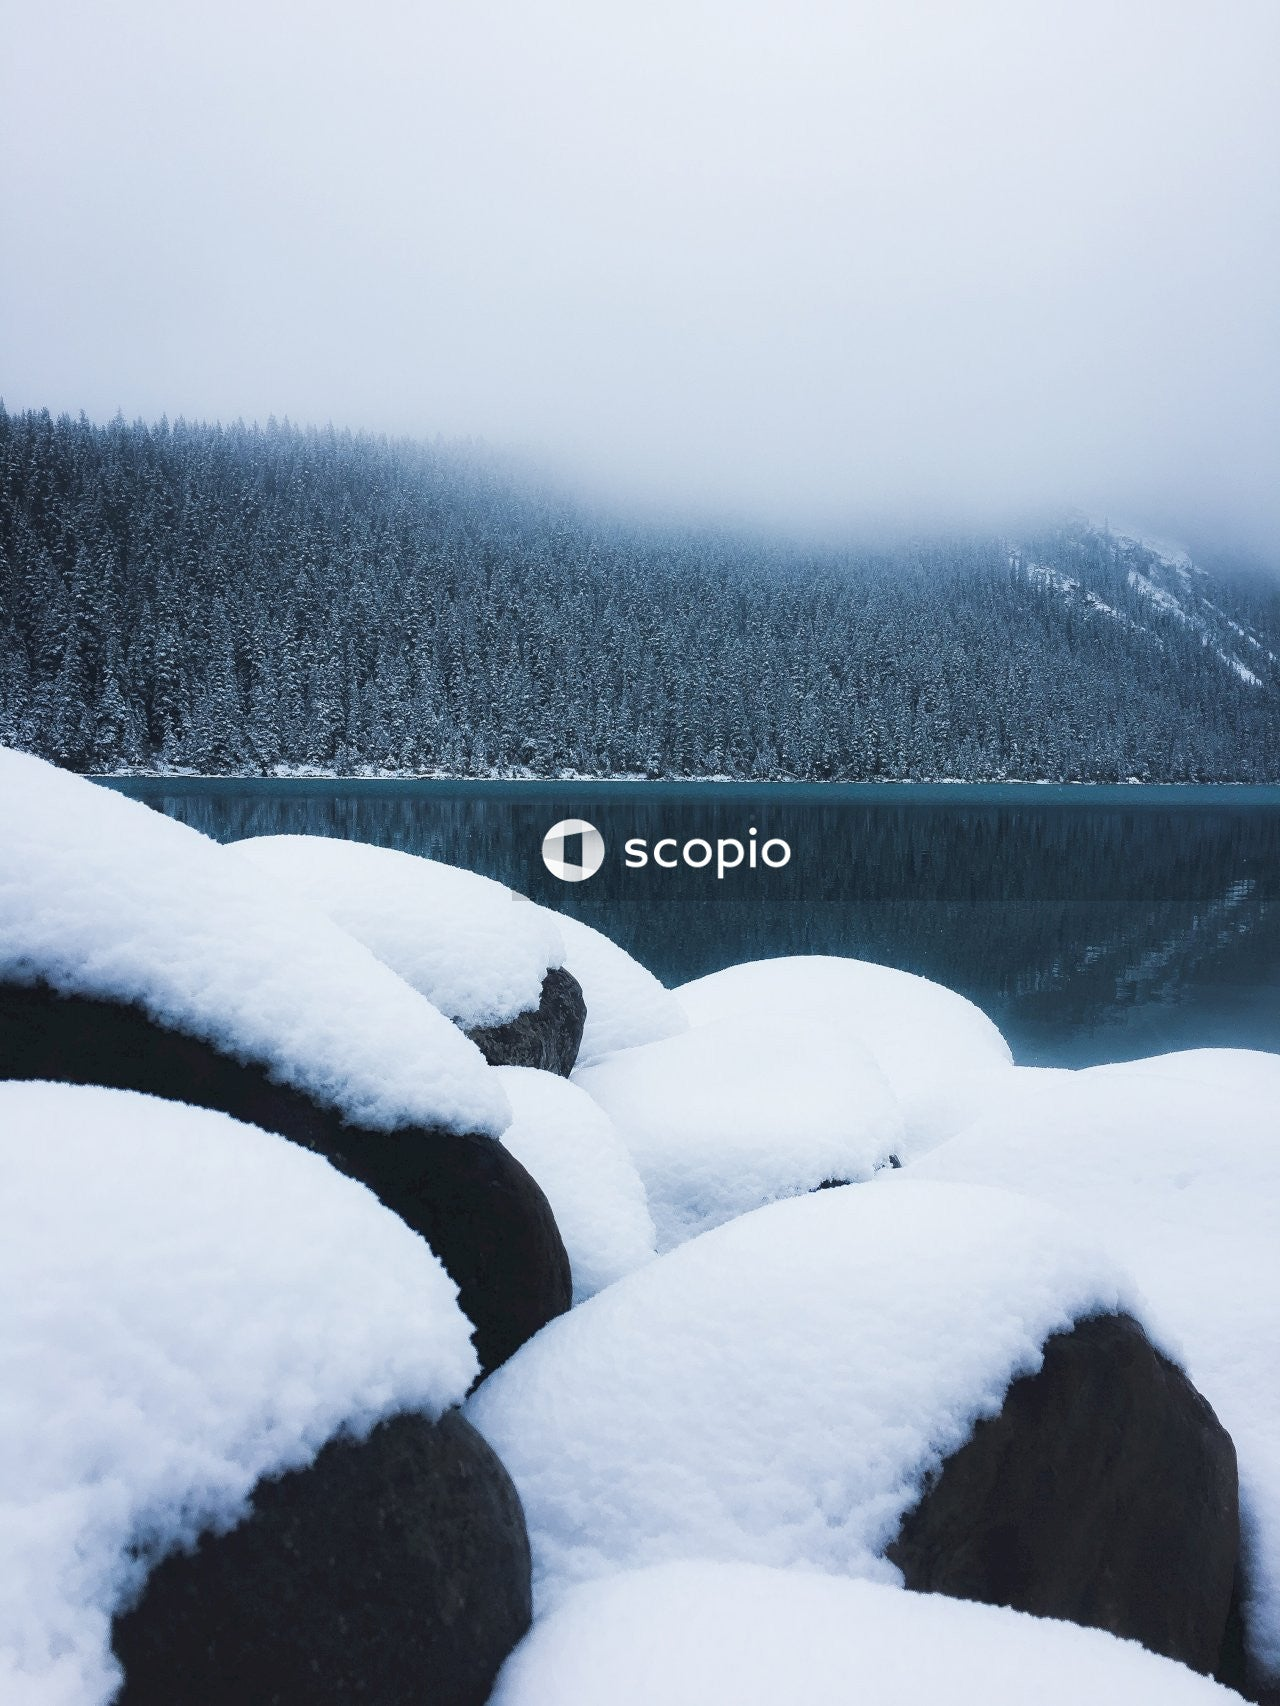 Snow covered rocks by lake and forested hill in fog